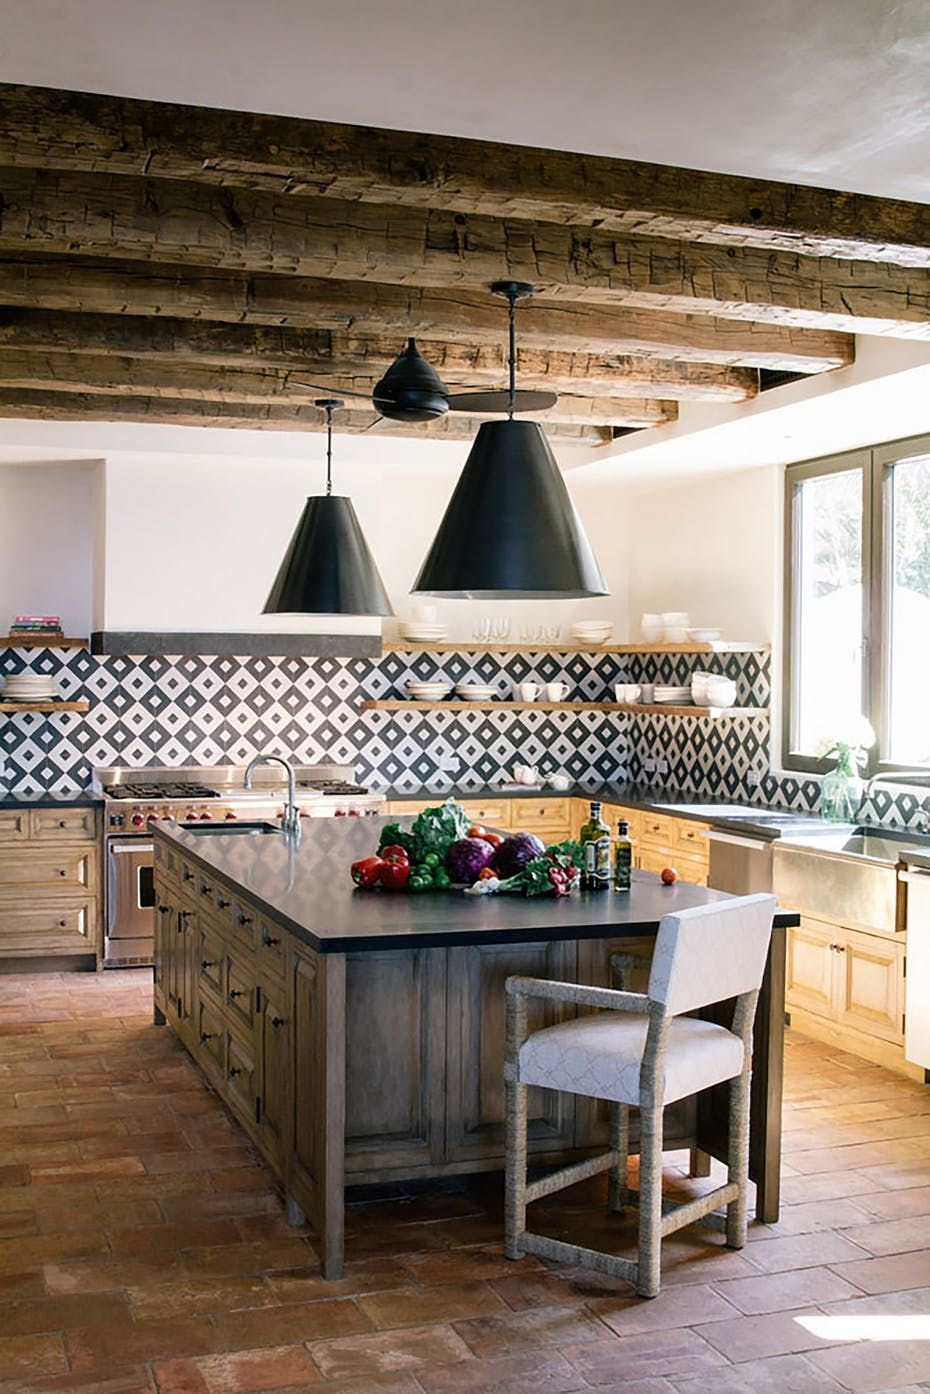 17.chris.barrett.design.portfolio.interiors.kitchen  Spanish